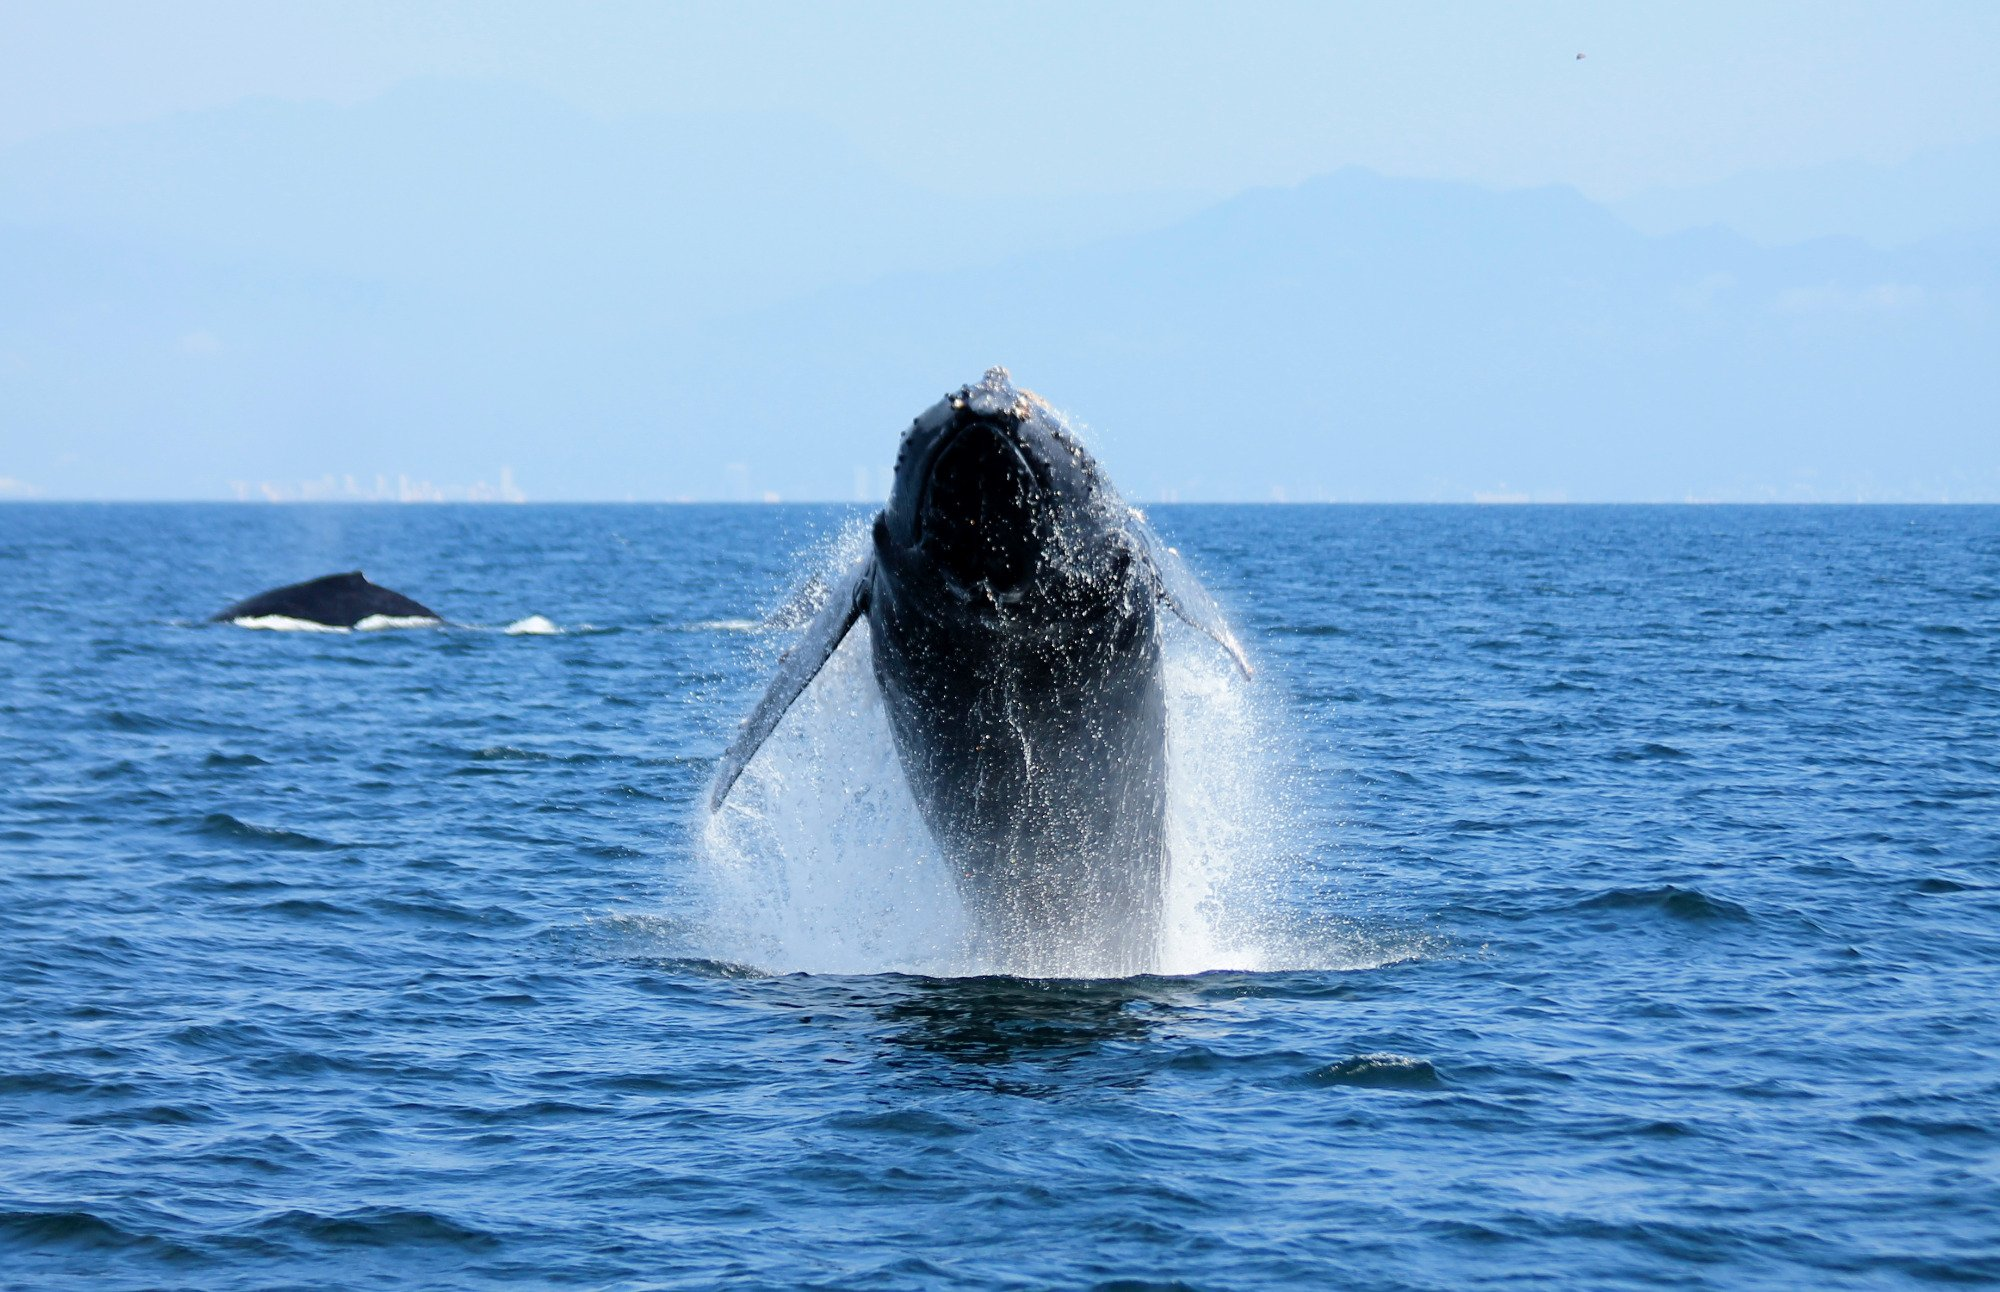 Great place to whale watch during the season.